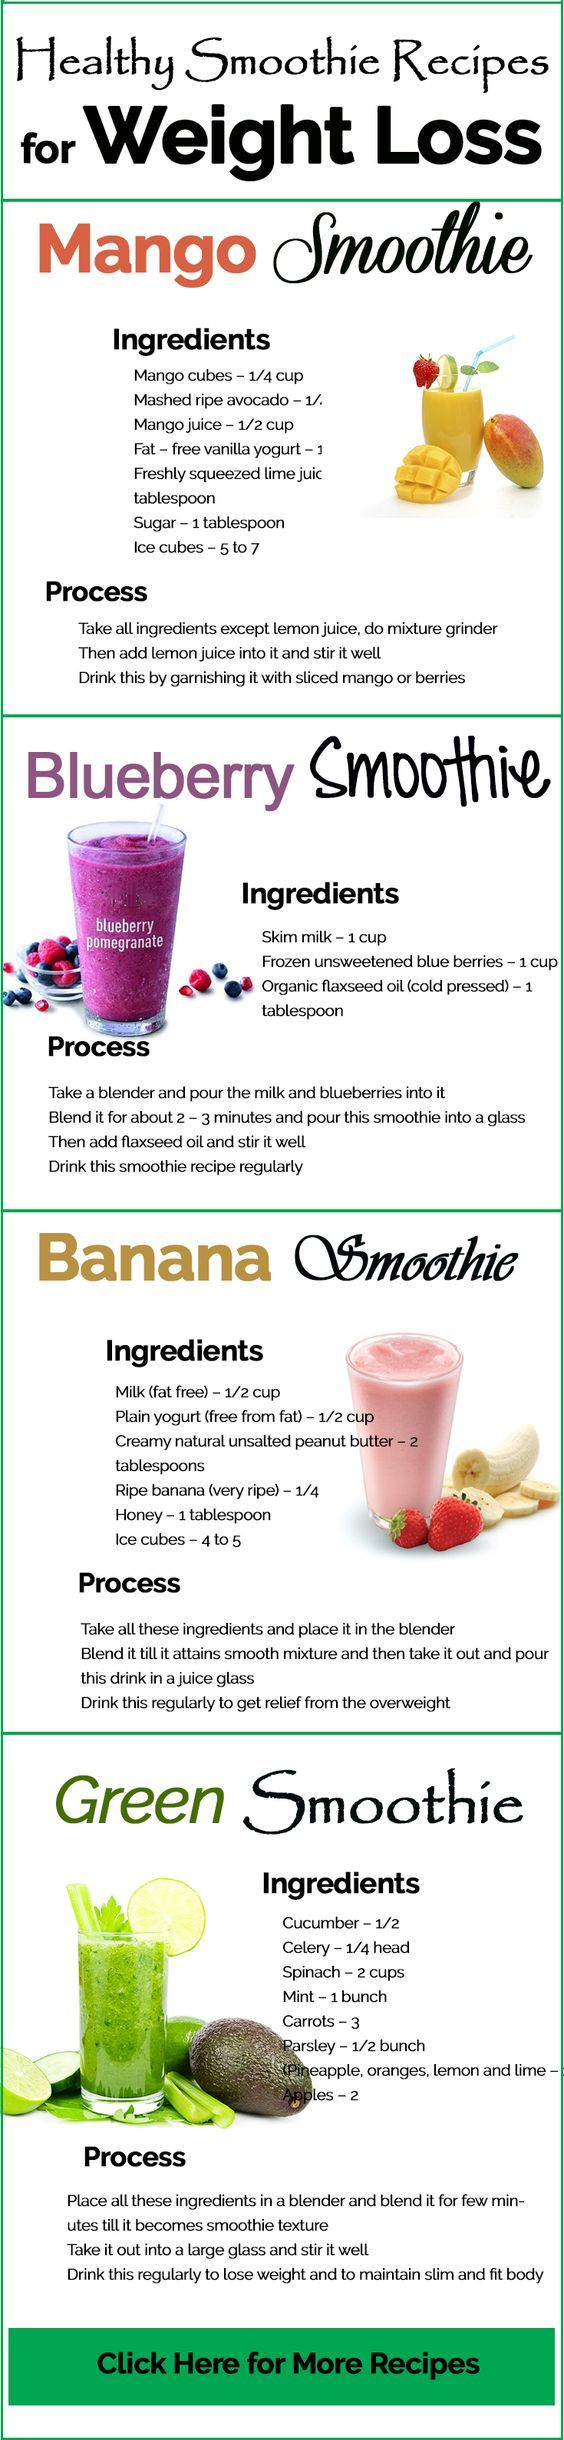 Healthy Smoothie Recipes for Weight Loss: